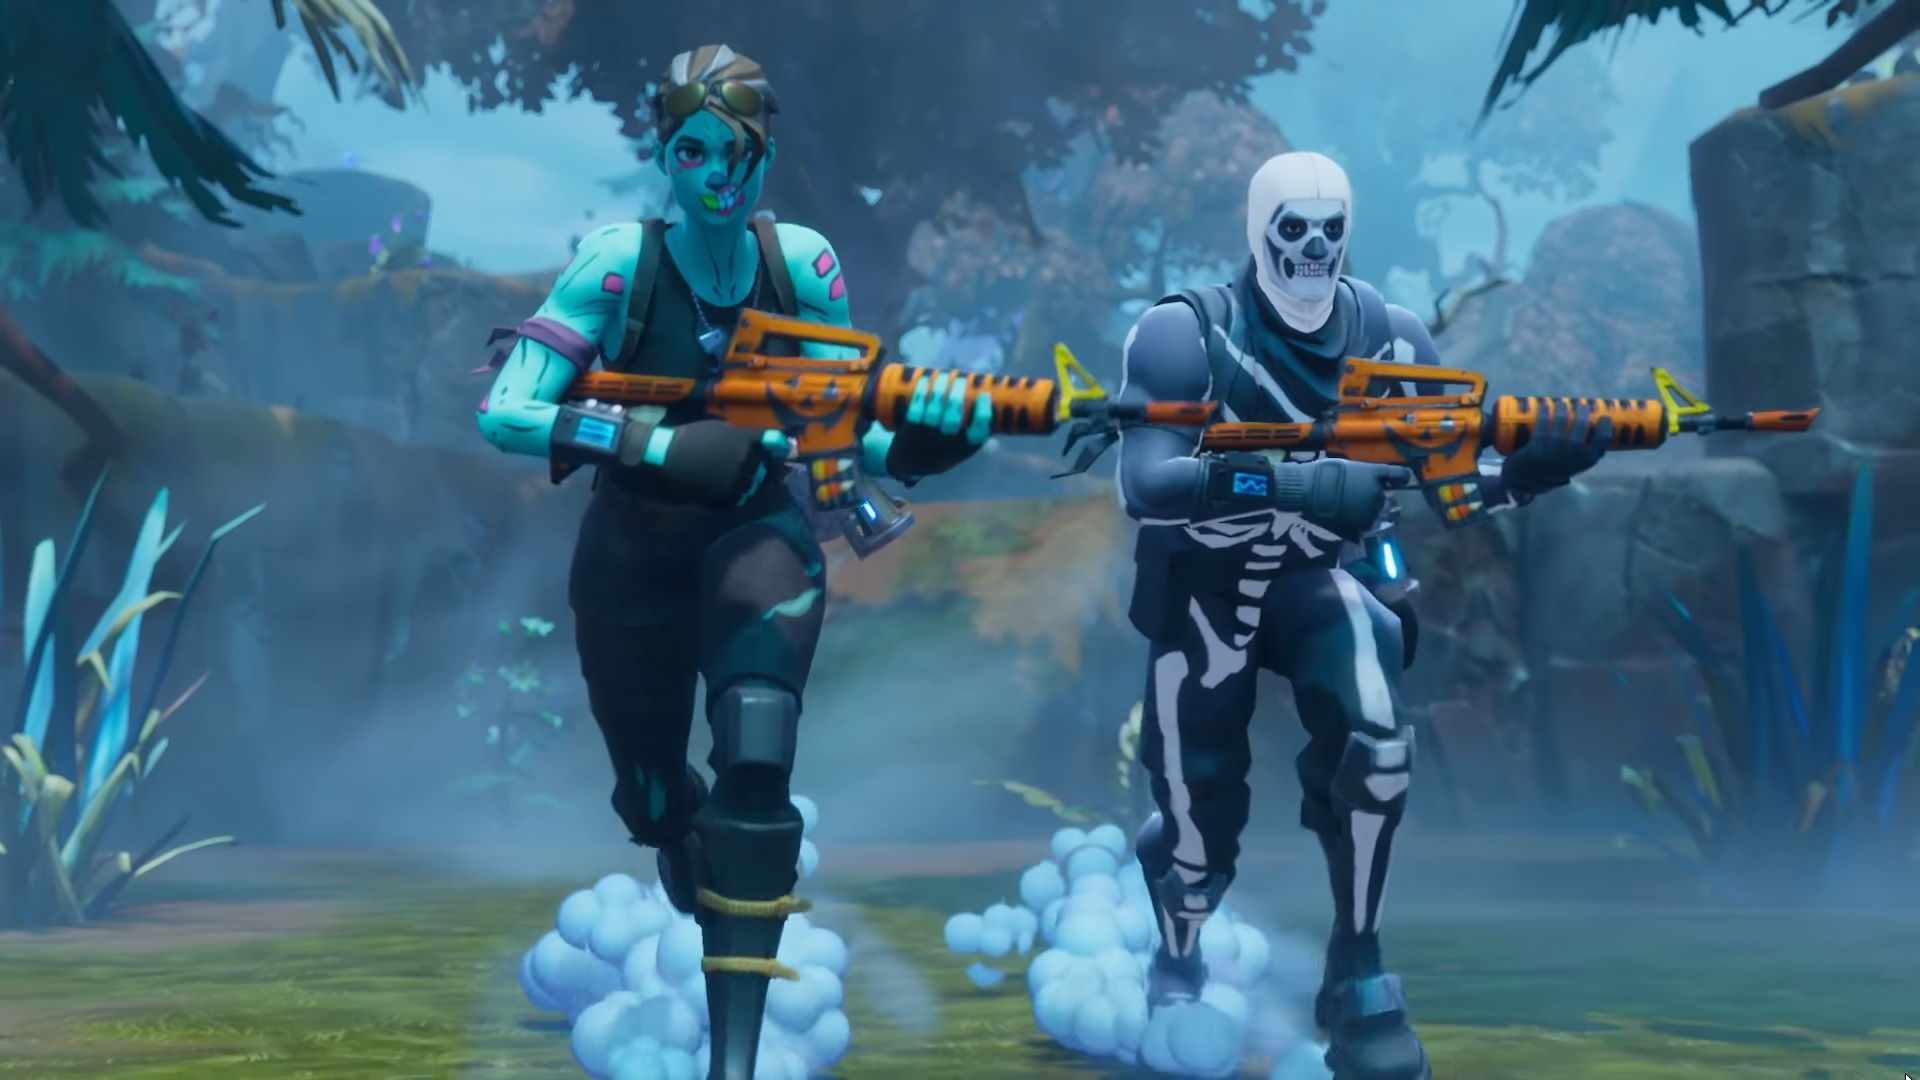 The fortnitemares update sends players to hexylvania in fortnite indie obscura - Fortnite default skin wallpaper ...